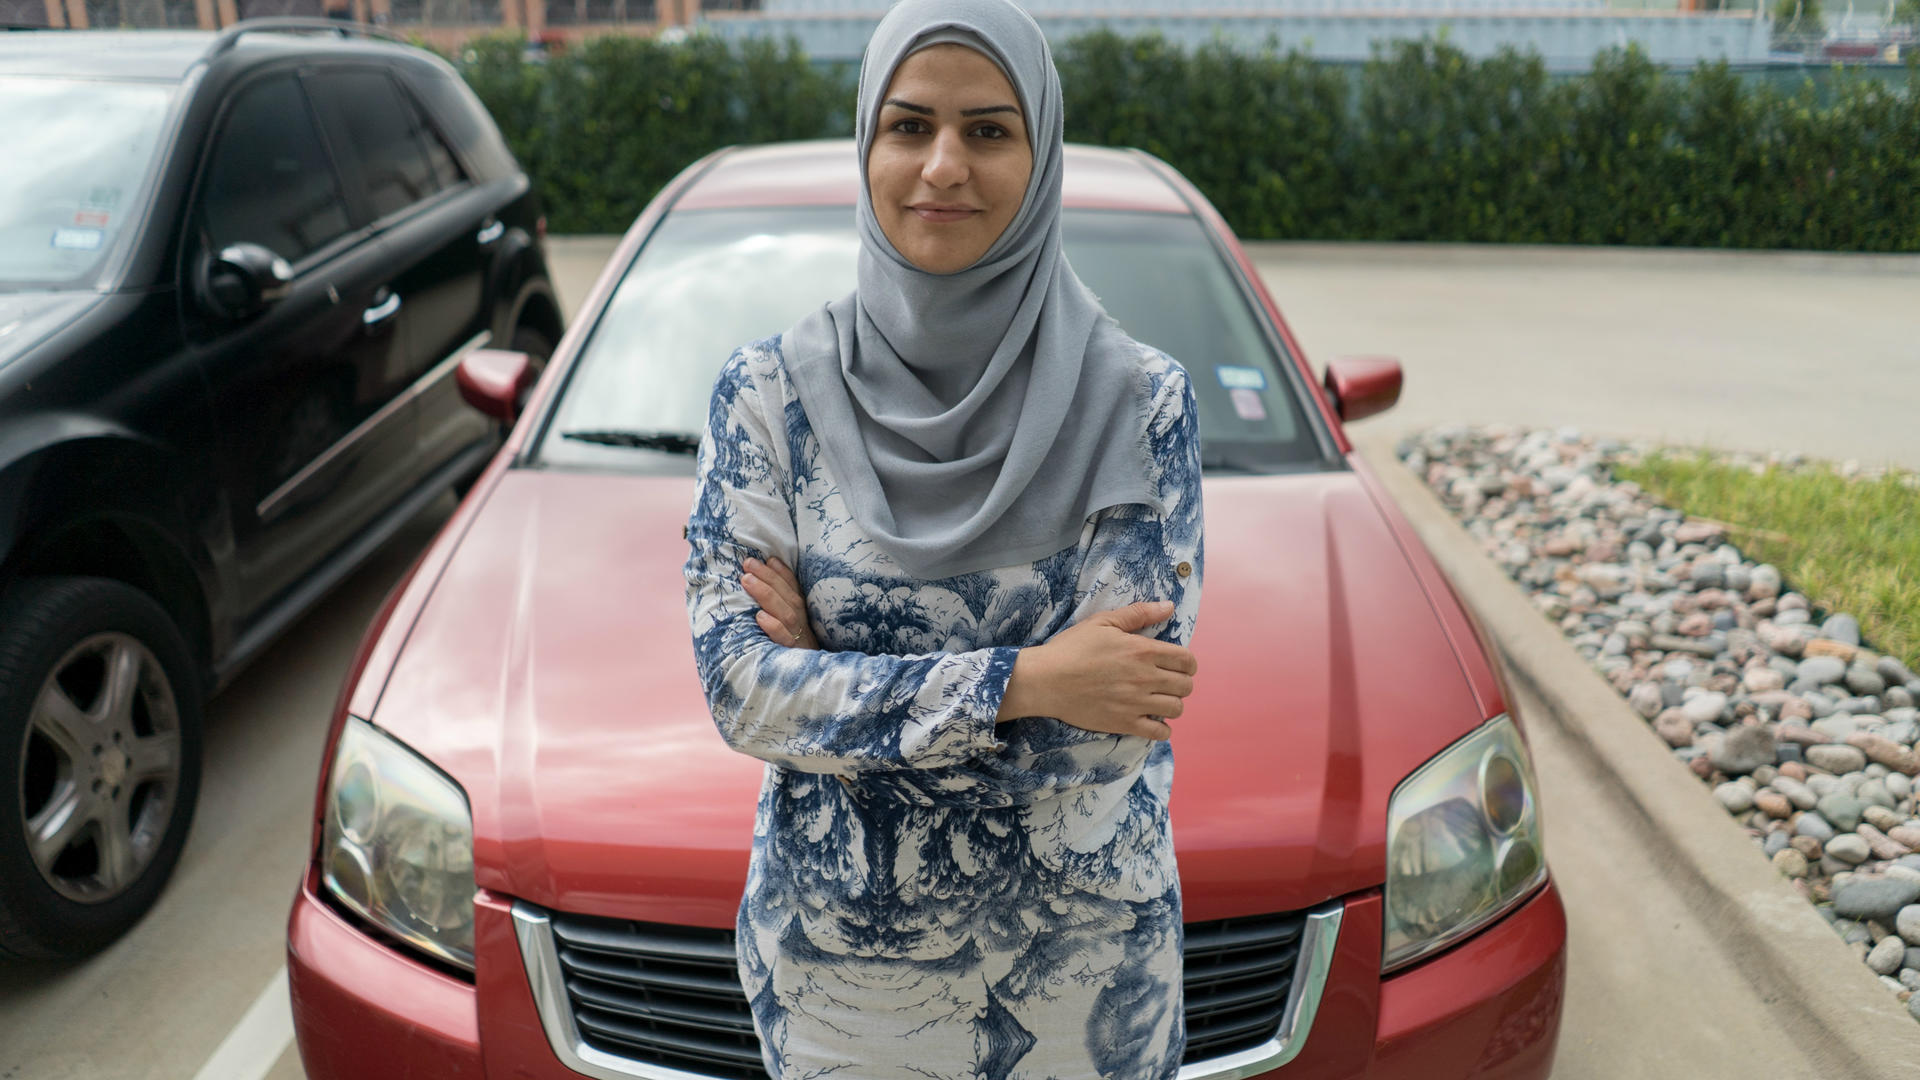 Bothina Matar with her car